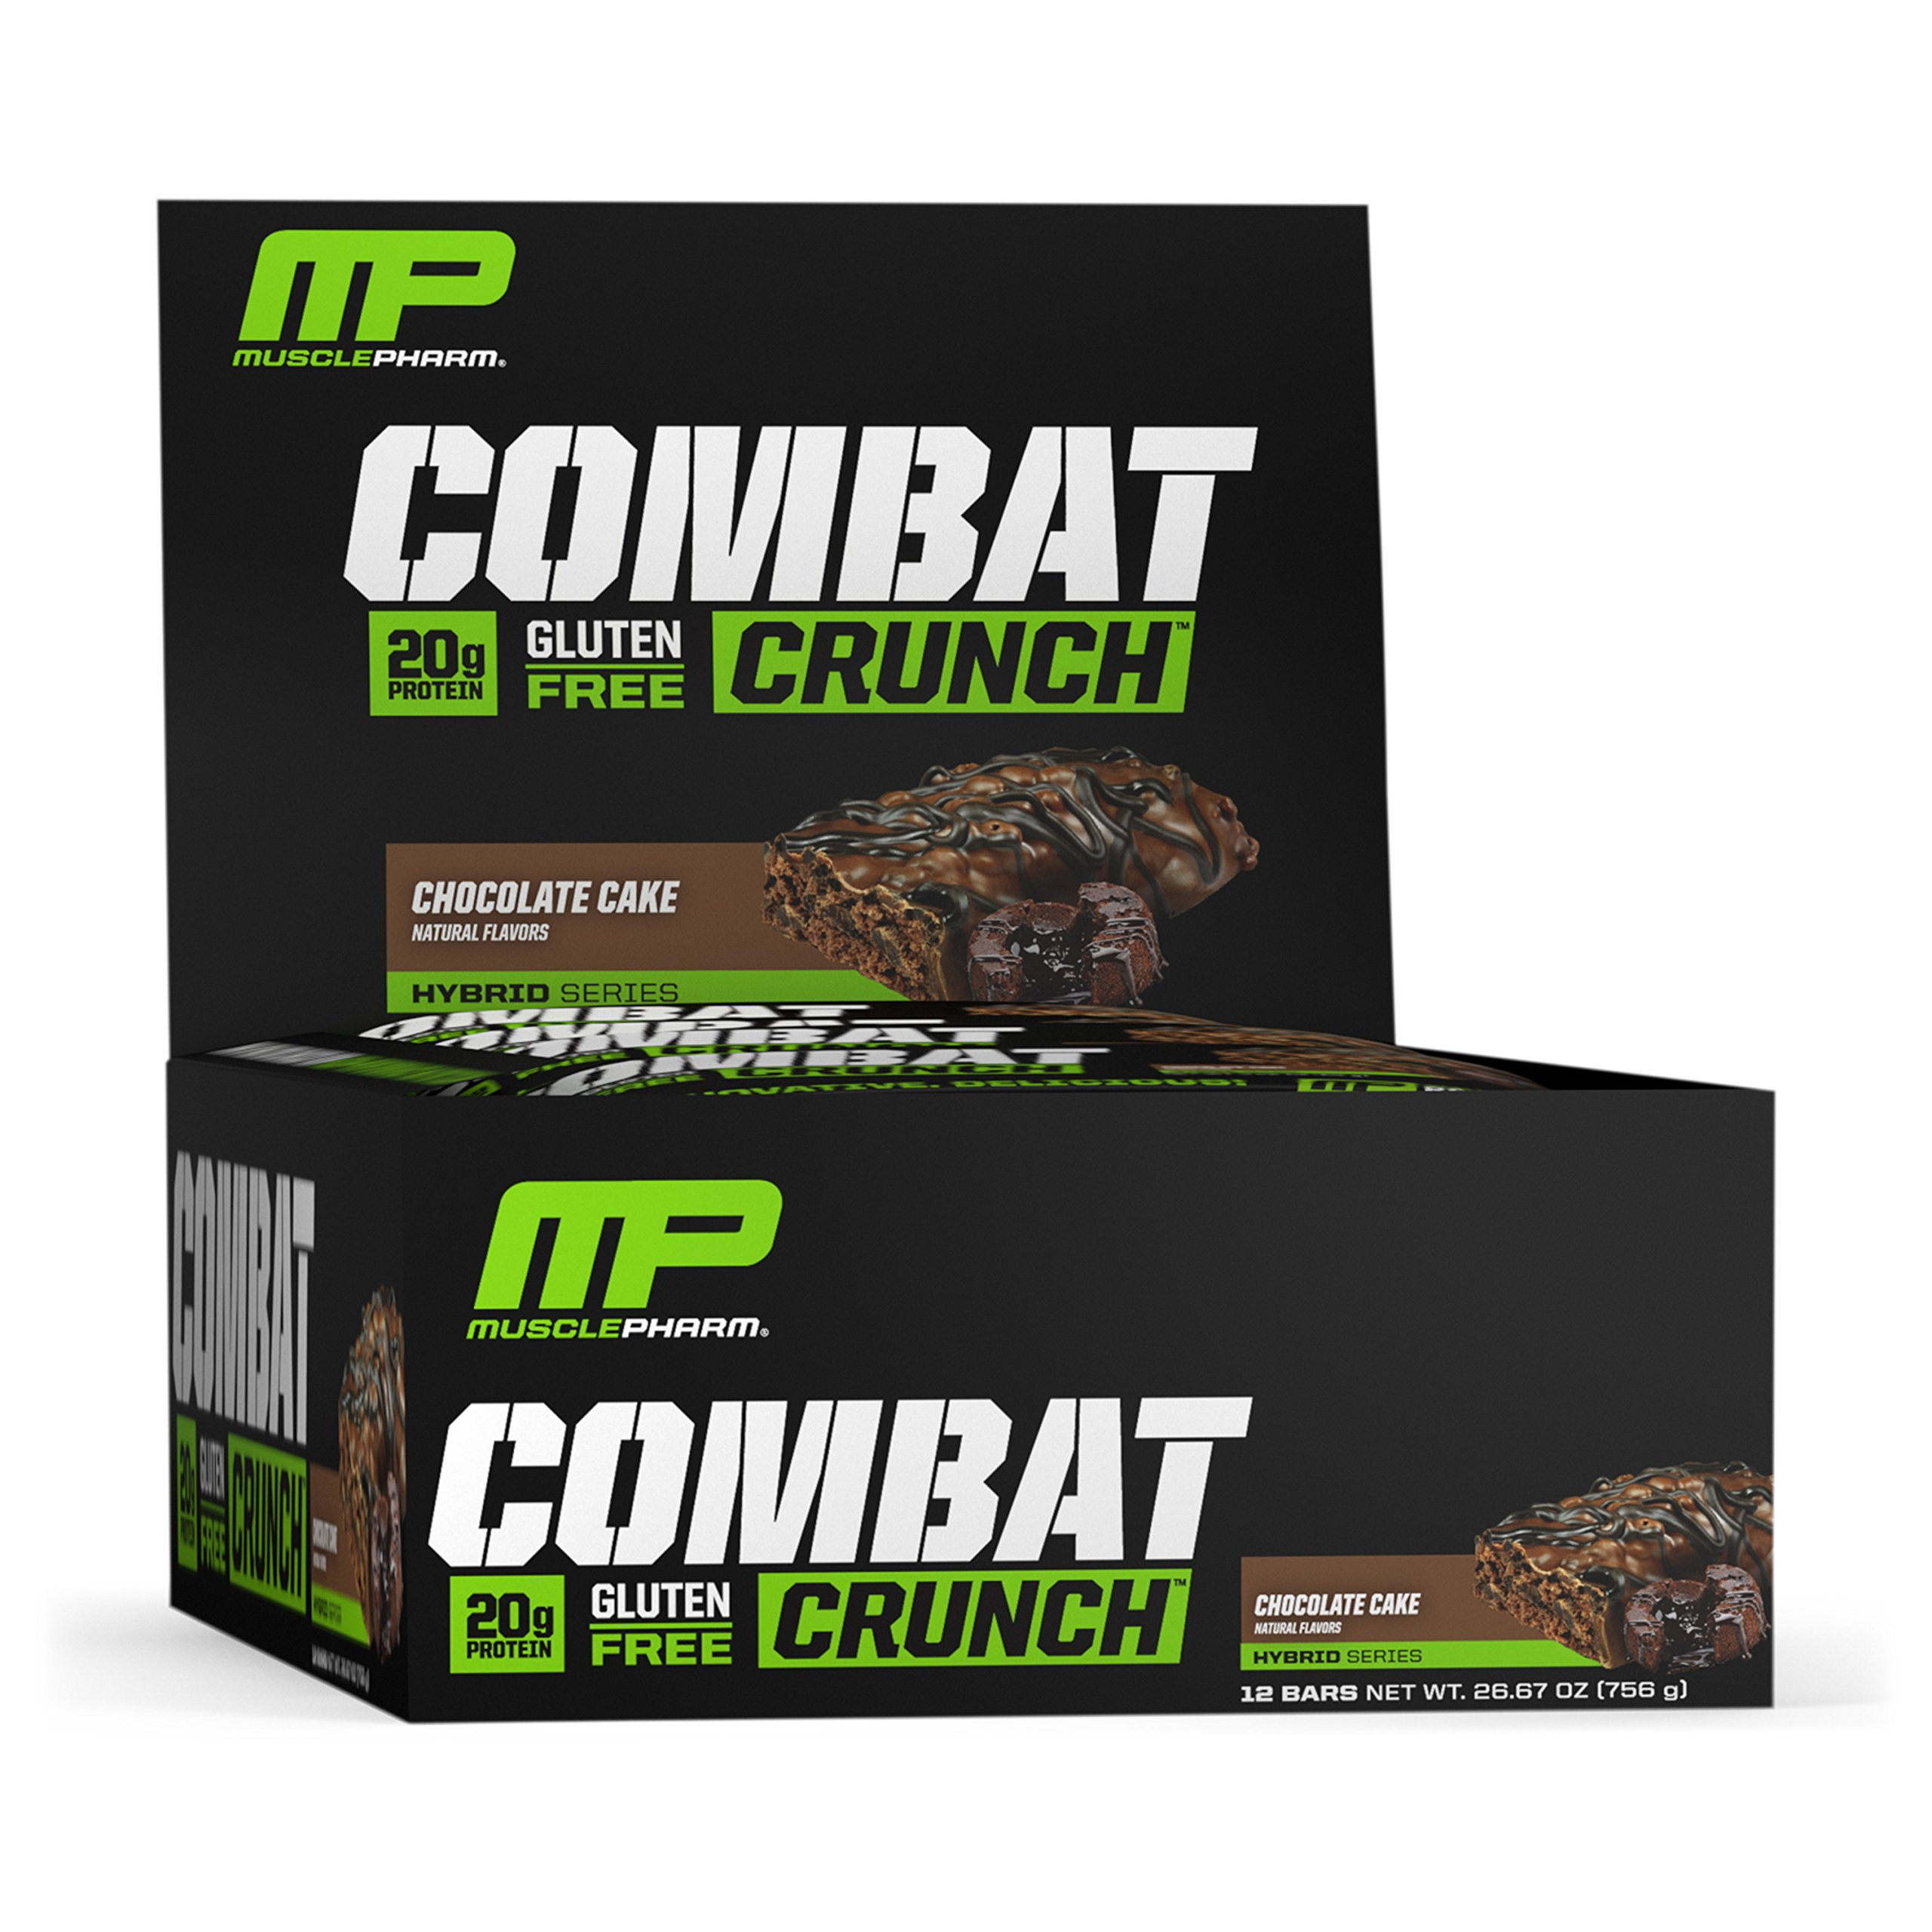 MusclePharm Combat Crunch Protein Bar, Multi-Layered Baked Bar, Gluten-Free Bars, 20 g Protein, Low-Sugar, Low-Carb, Gluten-Free, Chocolate Cake Bars, 12 Count by Muscle Pharm